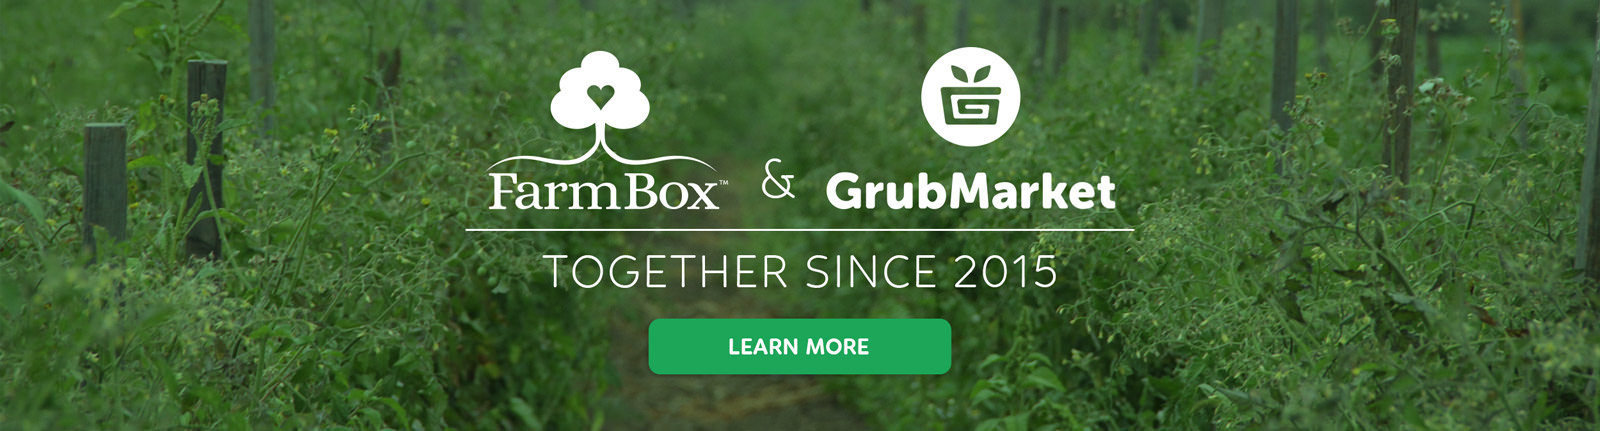 GrubMarket & FarmBox